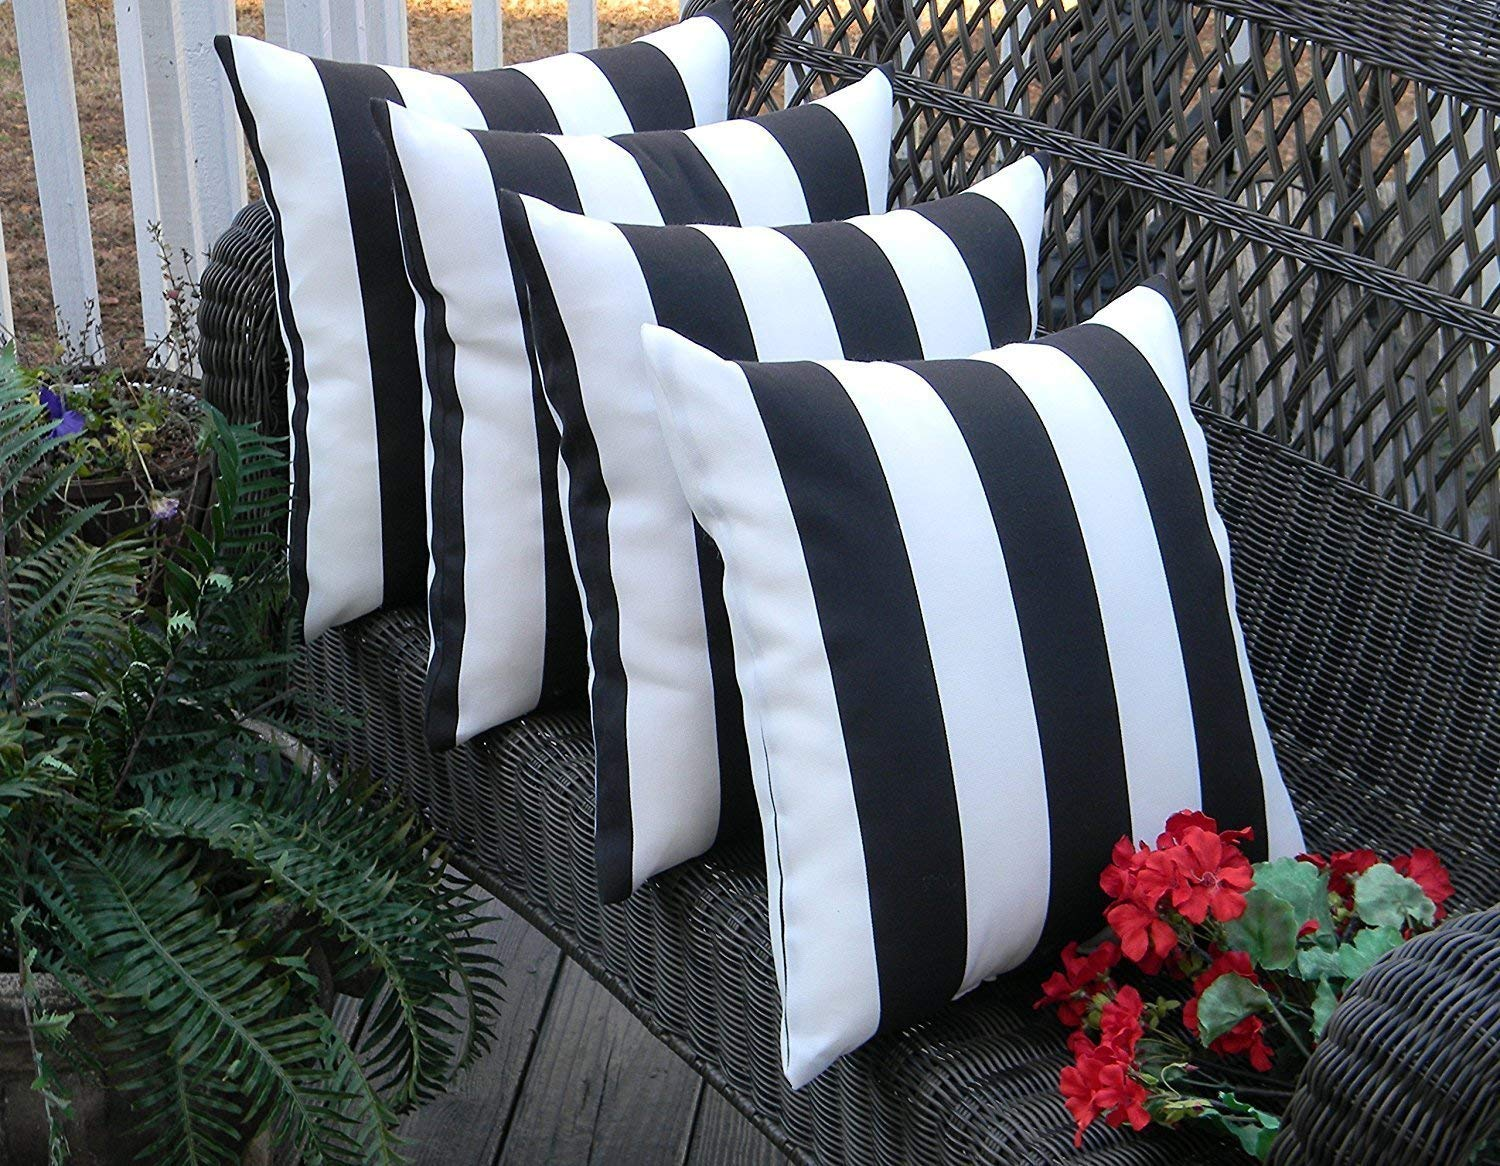 Resort Spa Home Decor Set of 4 Indoor Outdoor Square Decorative Throw Toss Pillows Black and White Stripe Fabric Choose Size 17 x 17